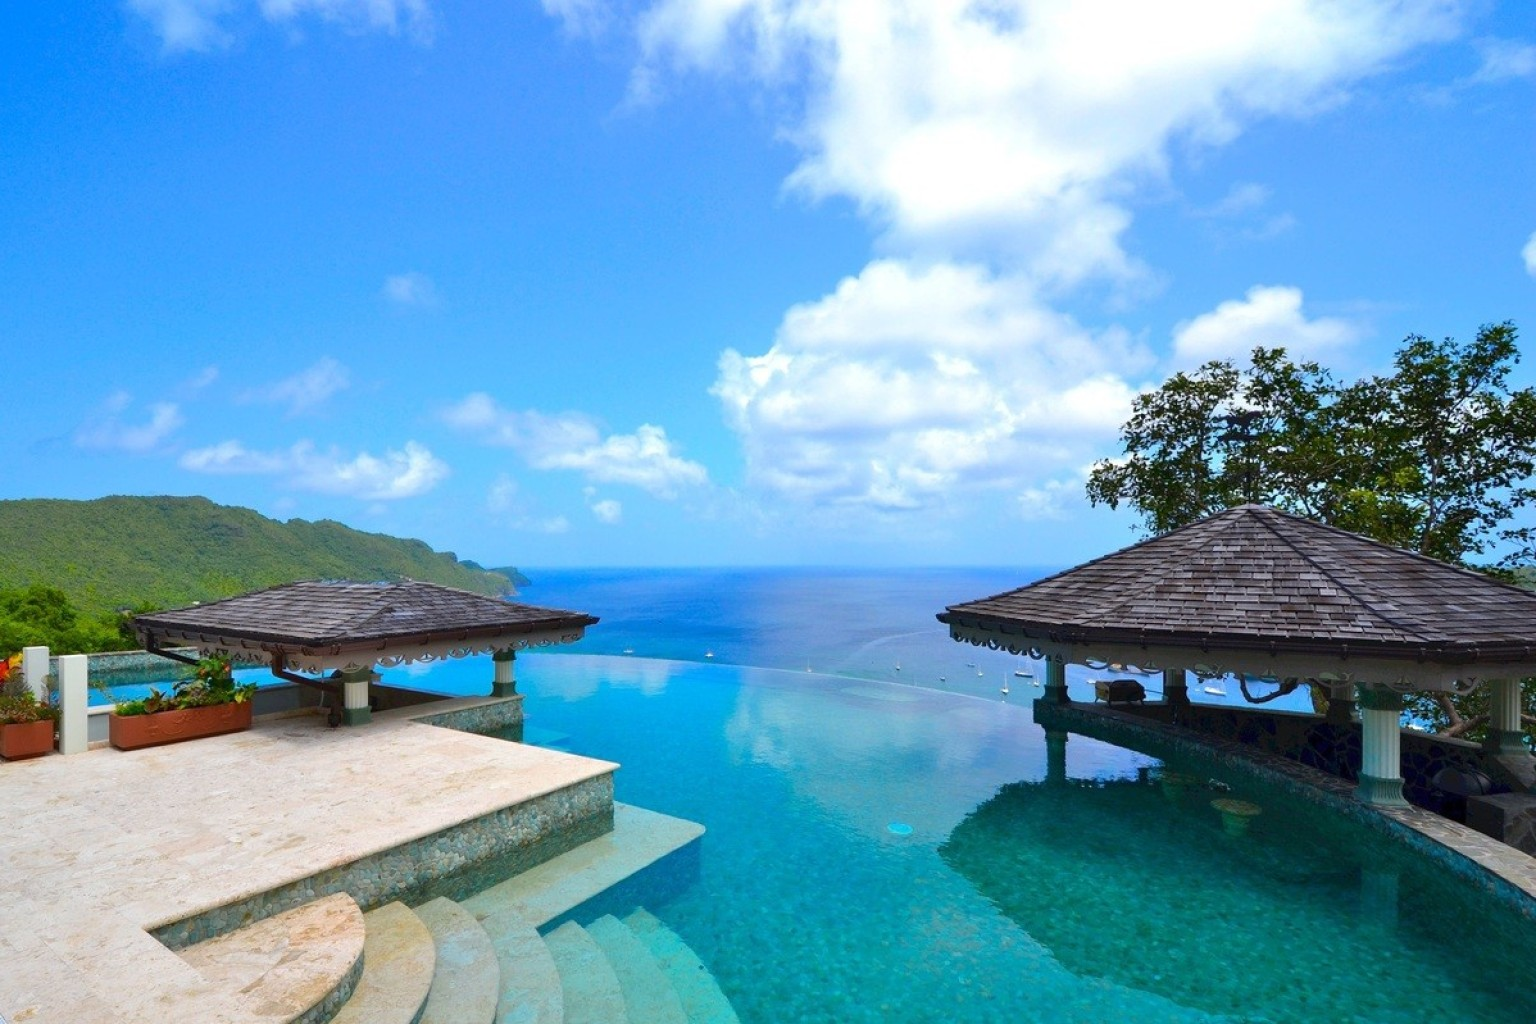 infinity pool beach house. Simple Pool For Infinity Pool Beach House A